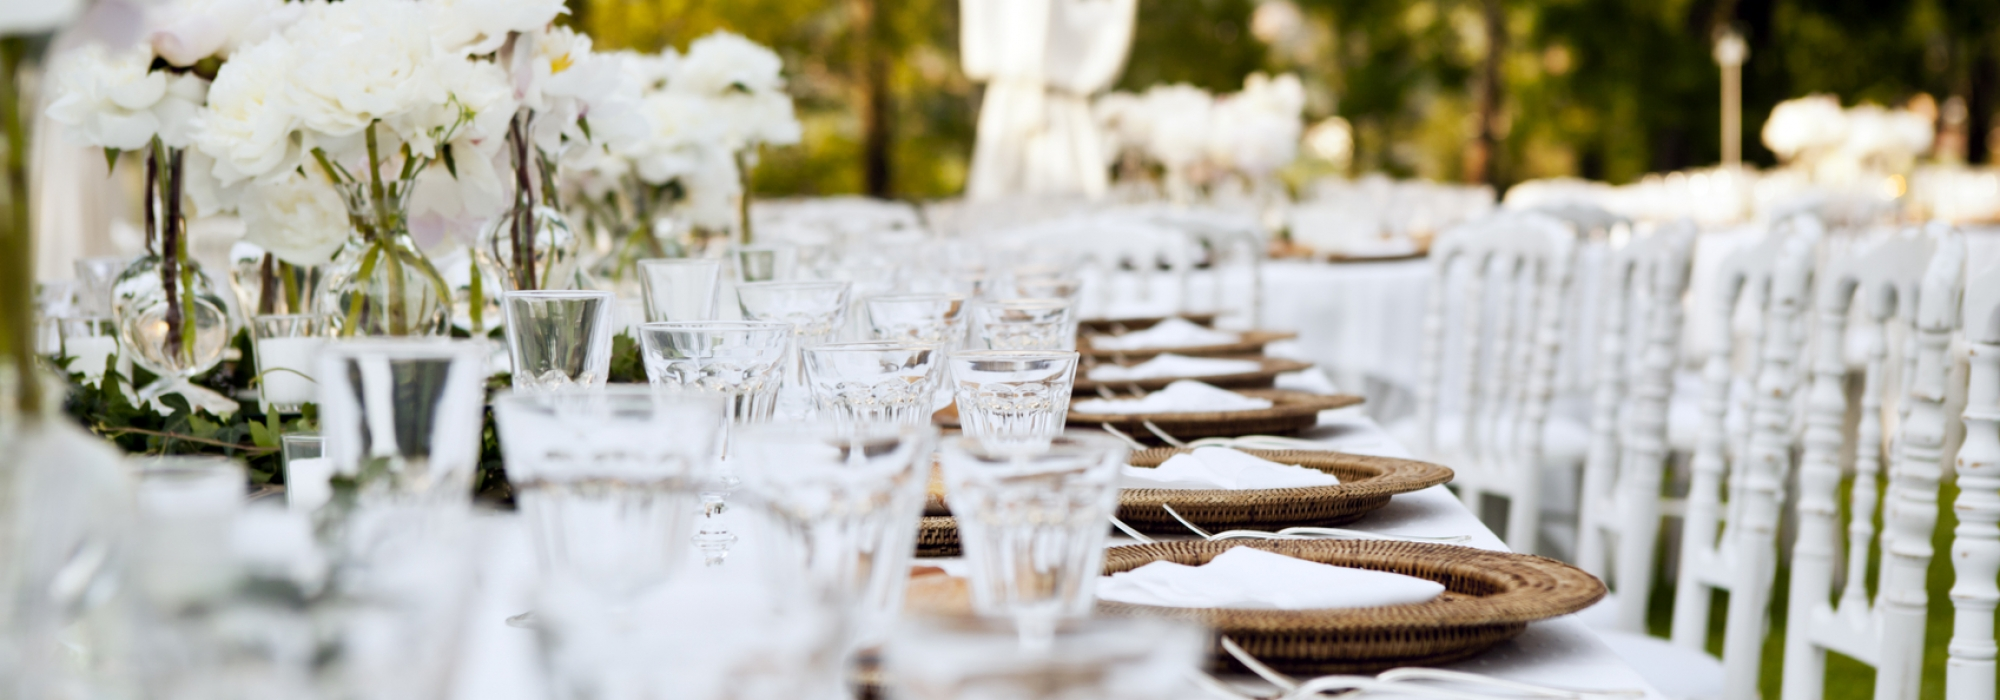 Wedding Table Backyard Toronto catering